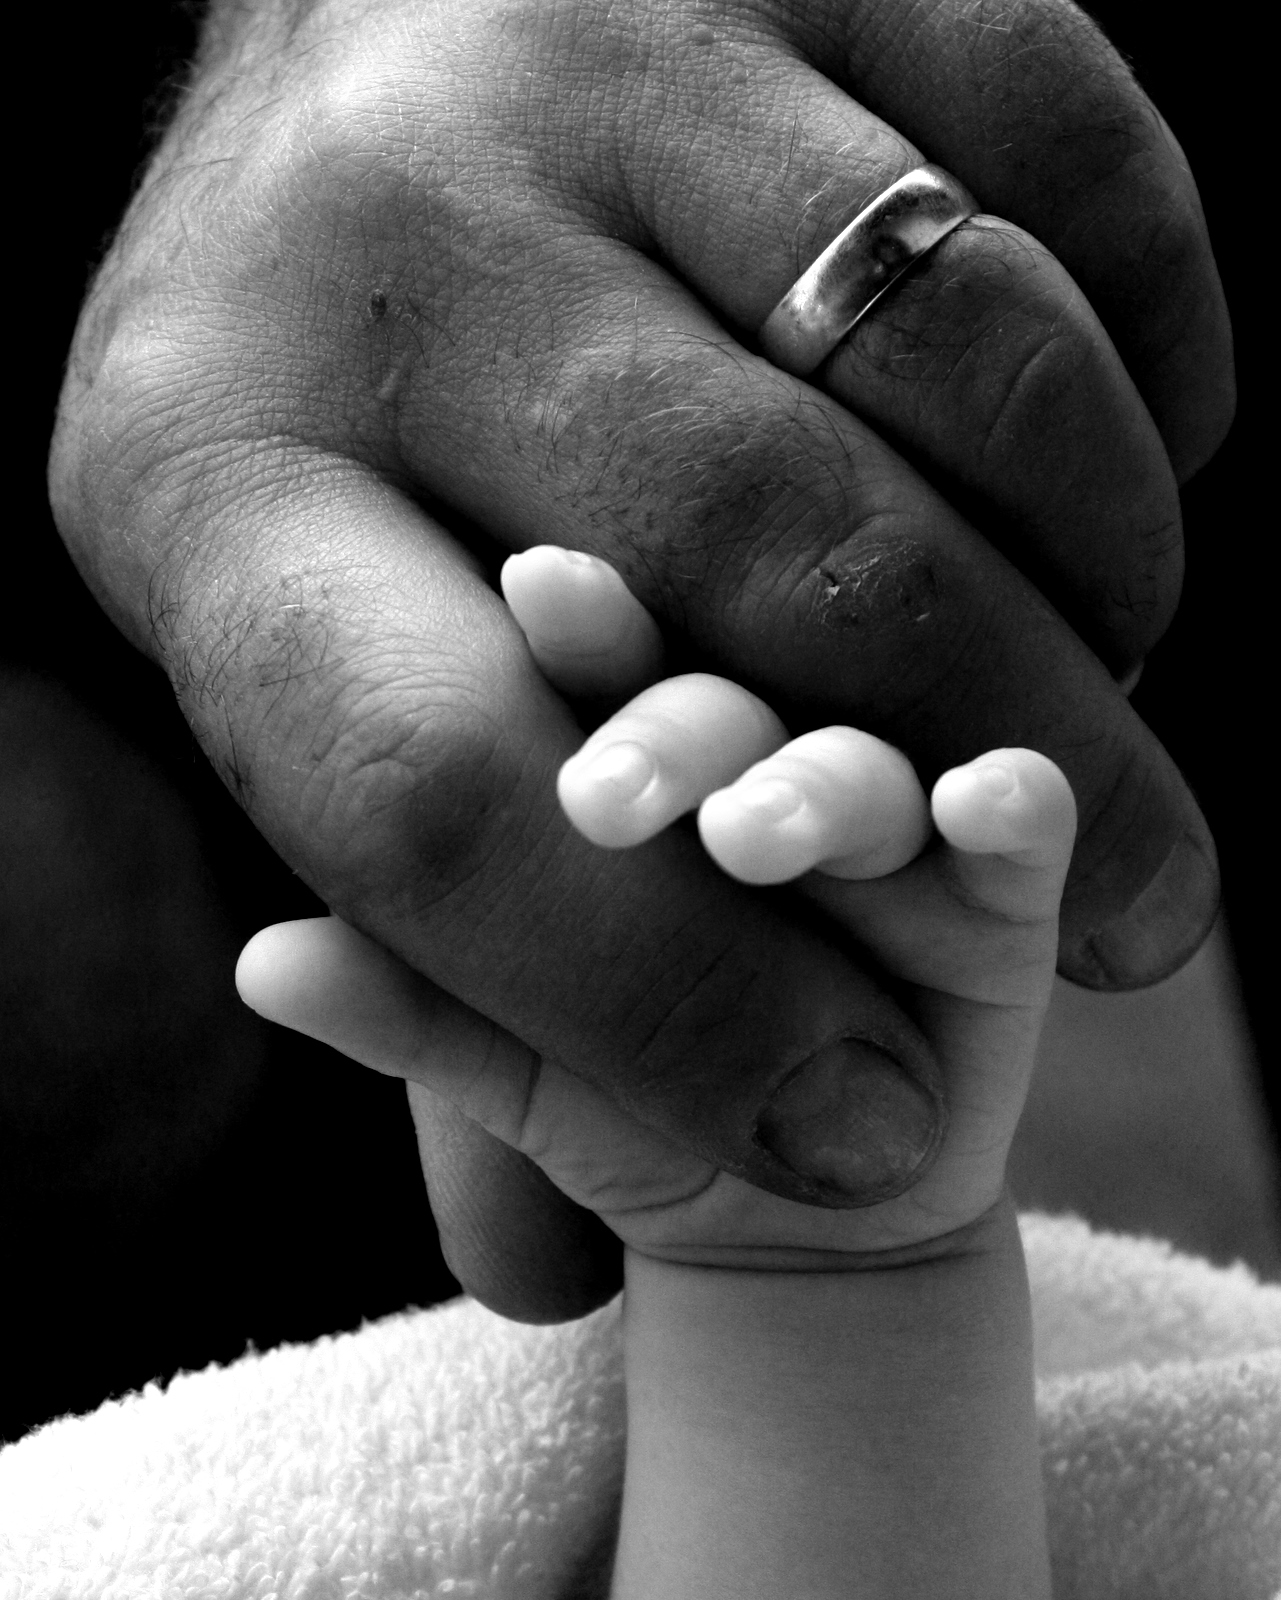 child with father's hand.jpg